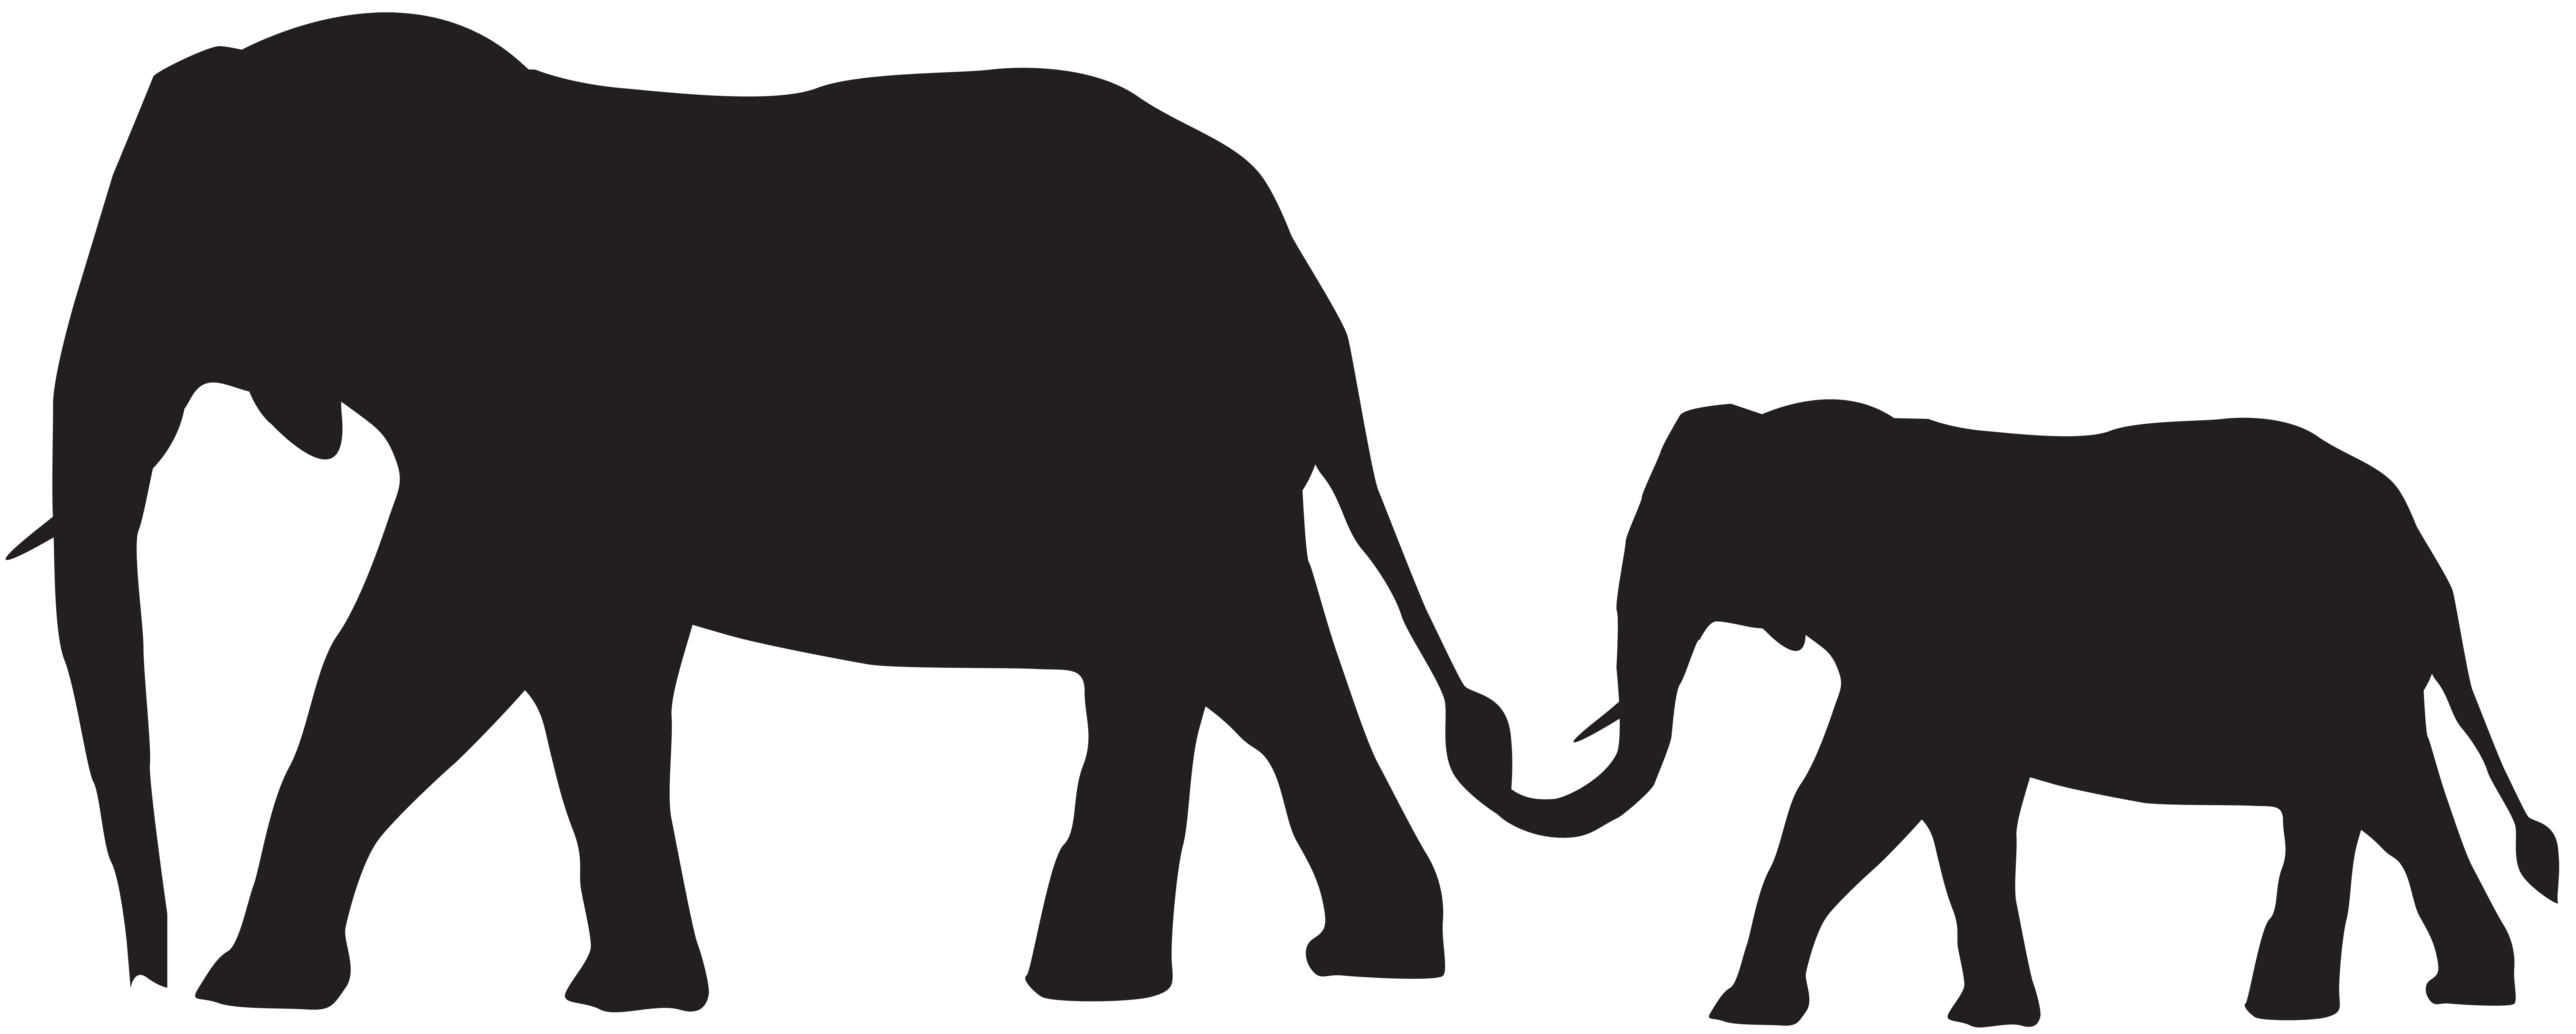 Mammoth vector elephant trunk. Asian silhouette at getdrawings